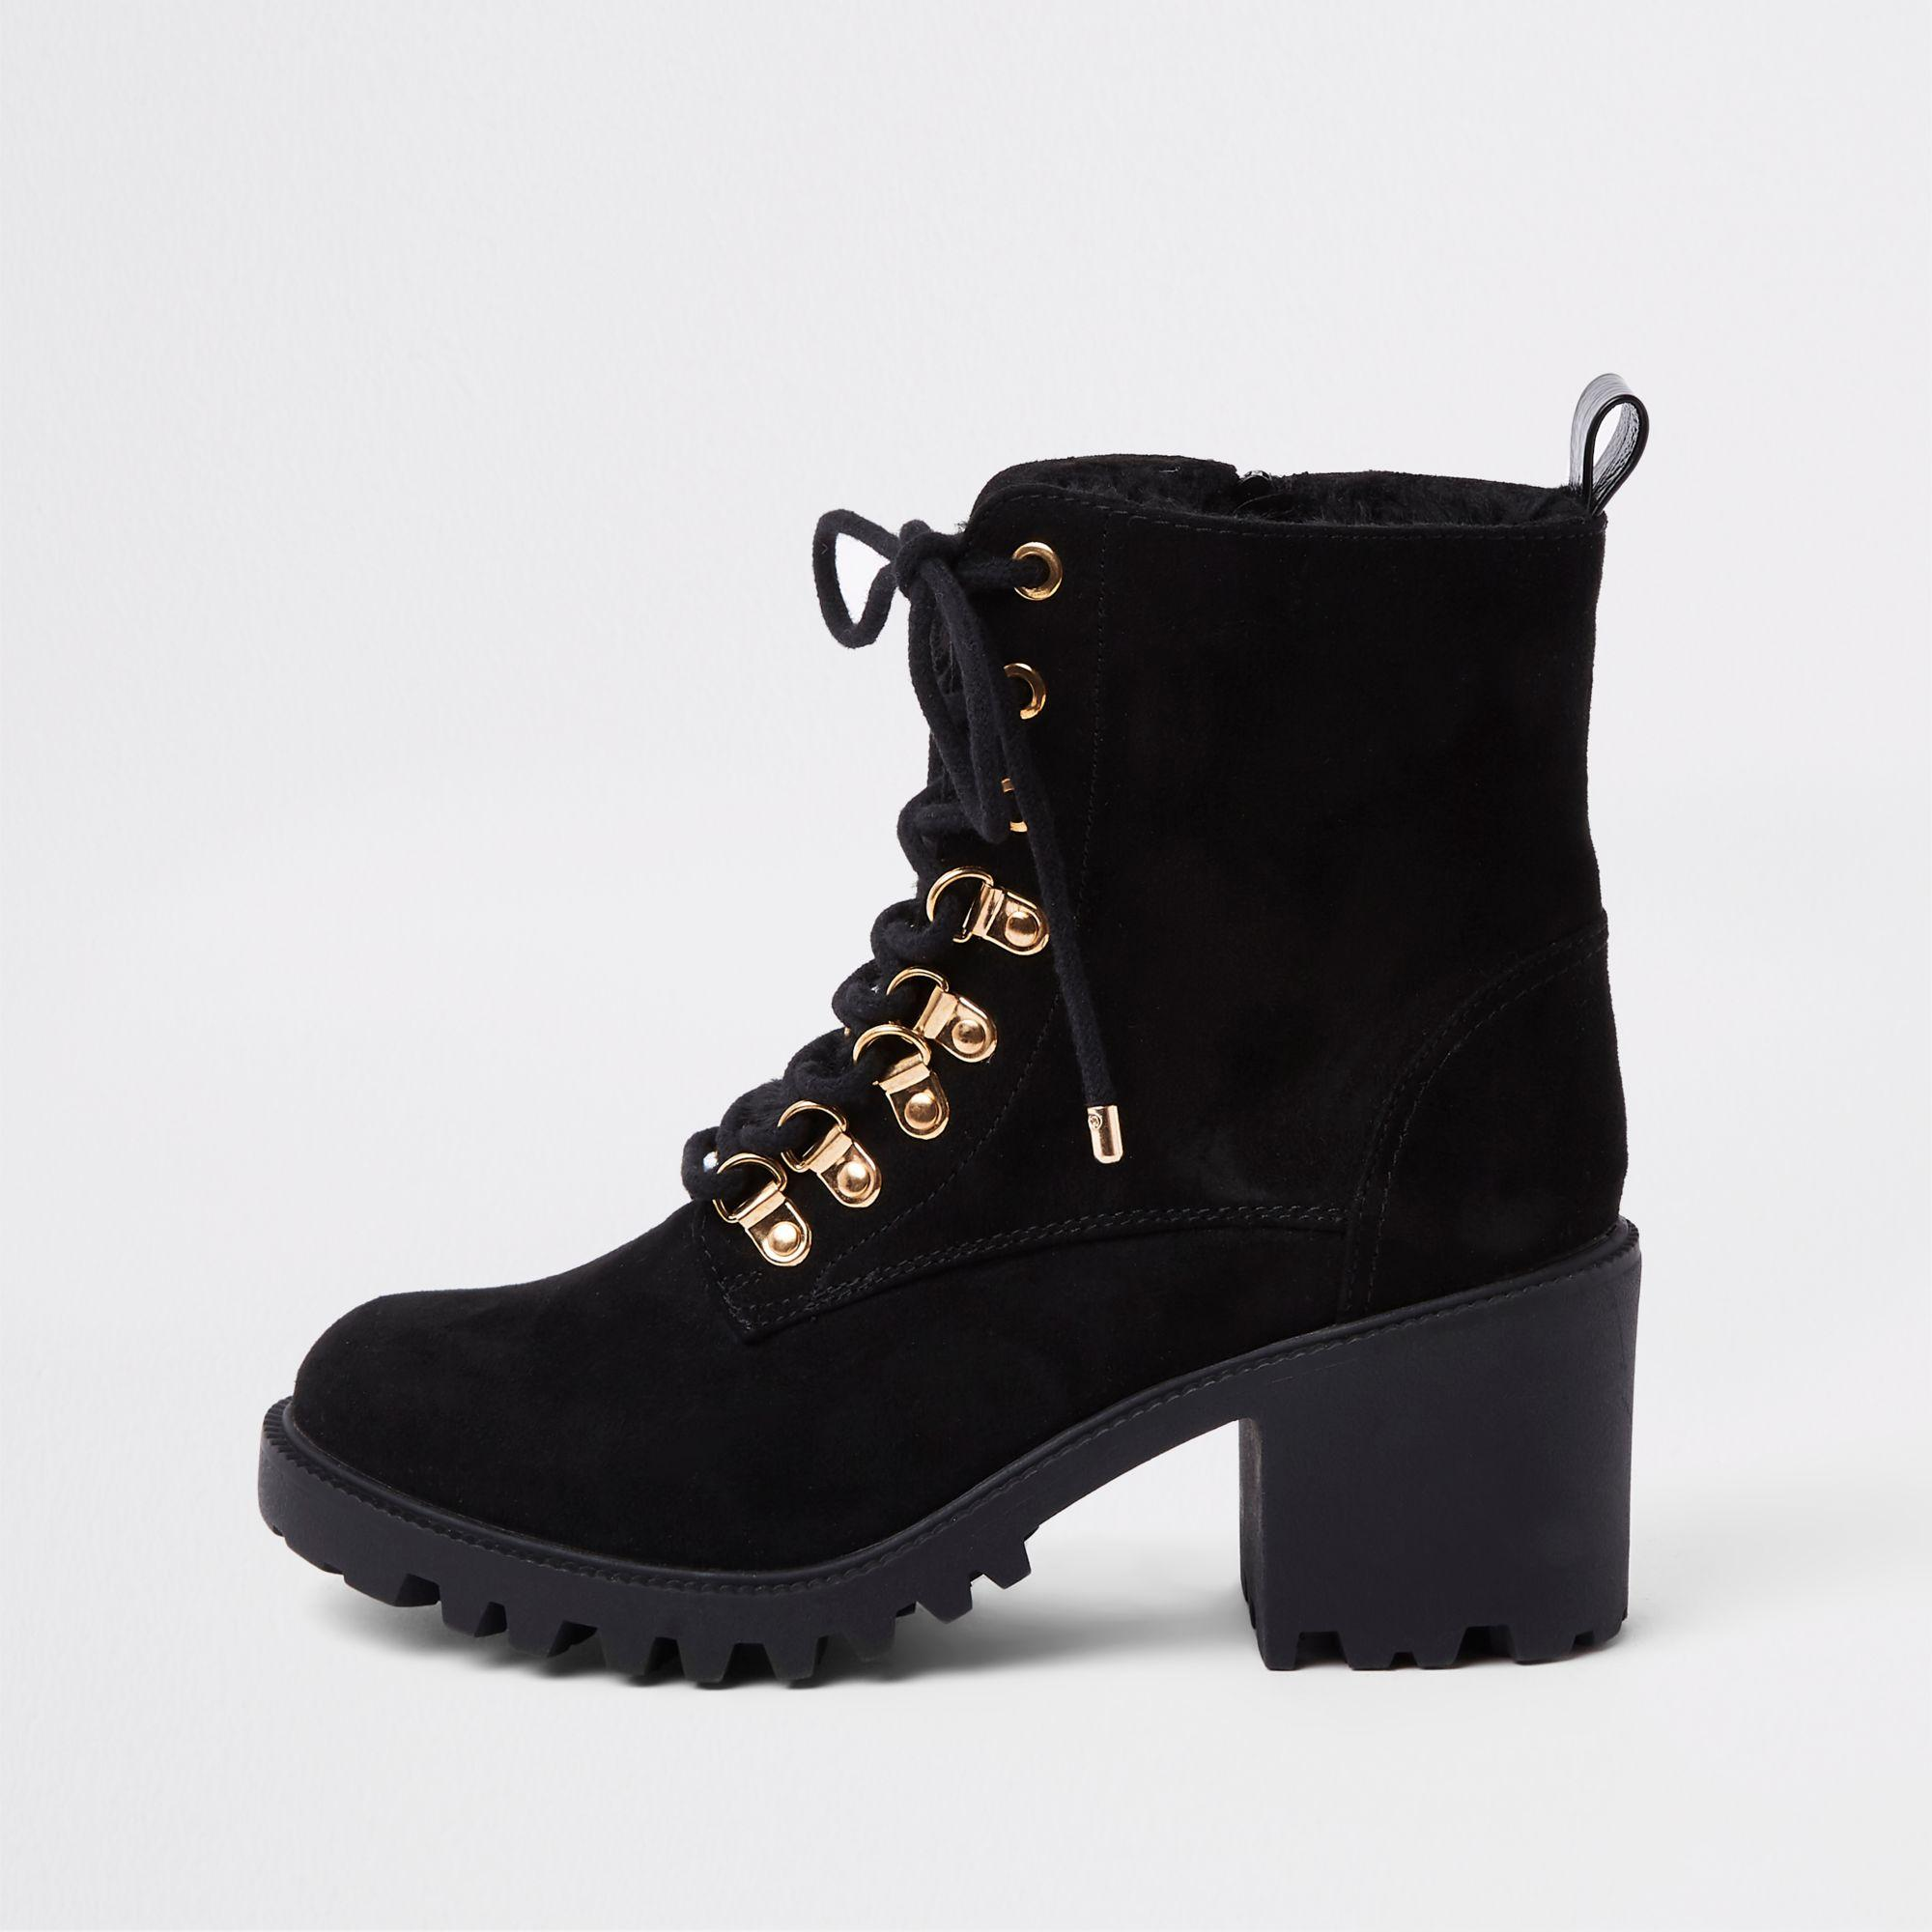 6c6b4b6c2095e4 River Island Faux Fur Lace-up Chunky Hiking Boots in Black - Lyst